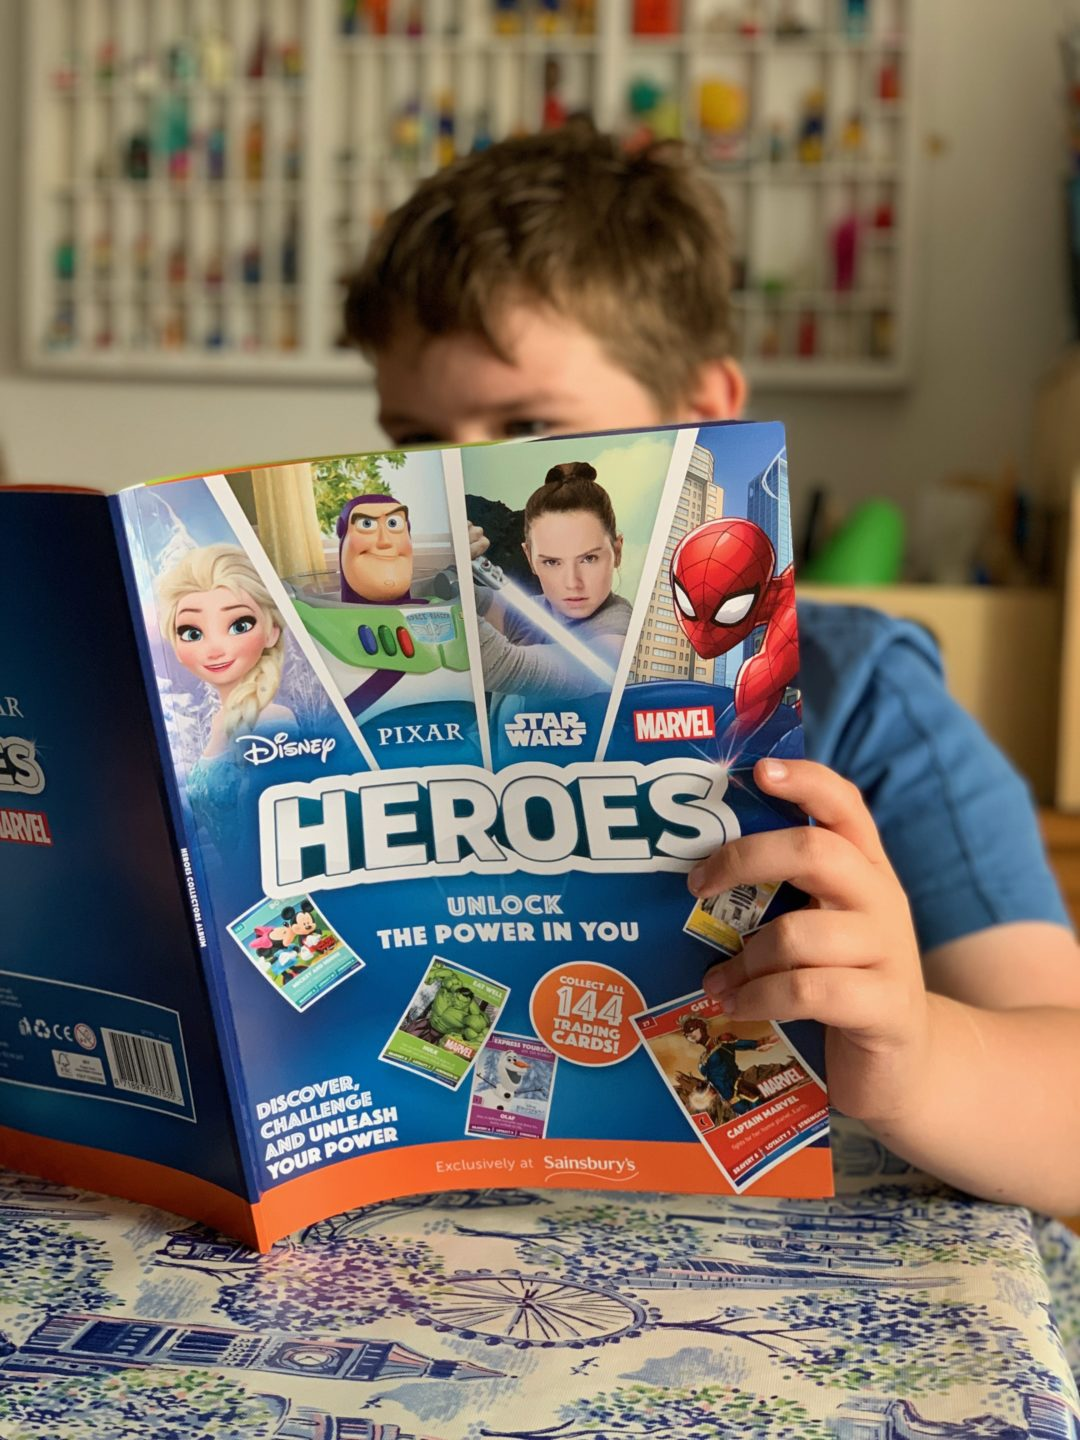 Disney Heroes cards from Sainsbury's